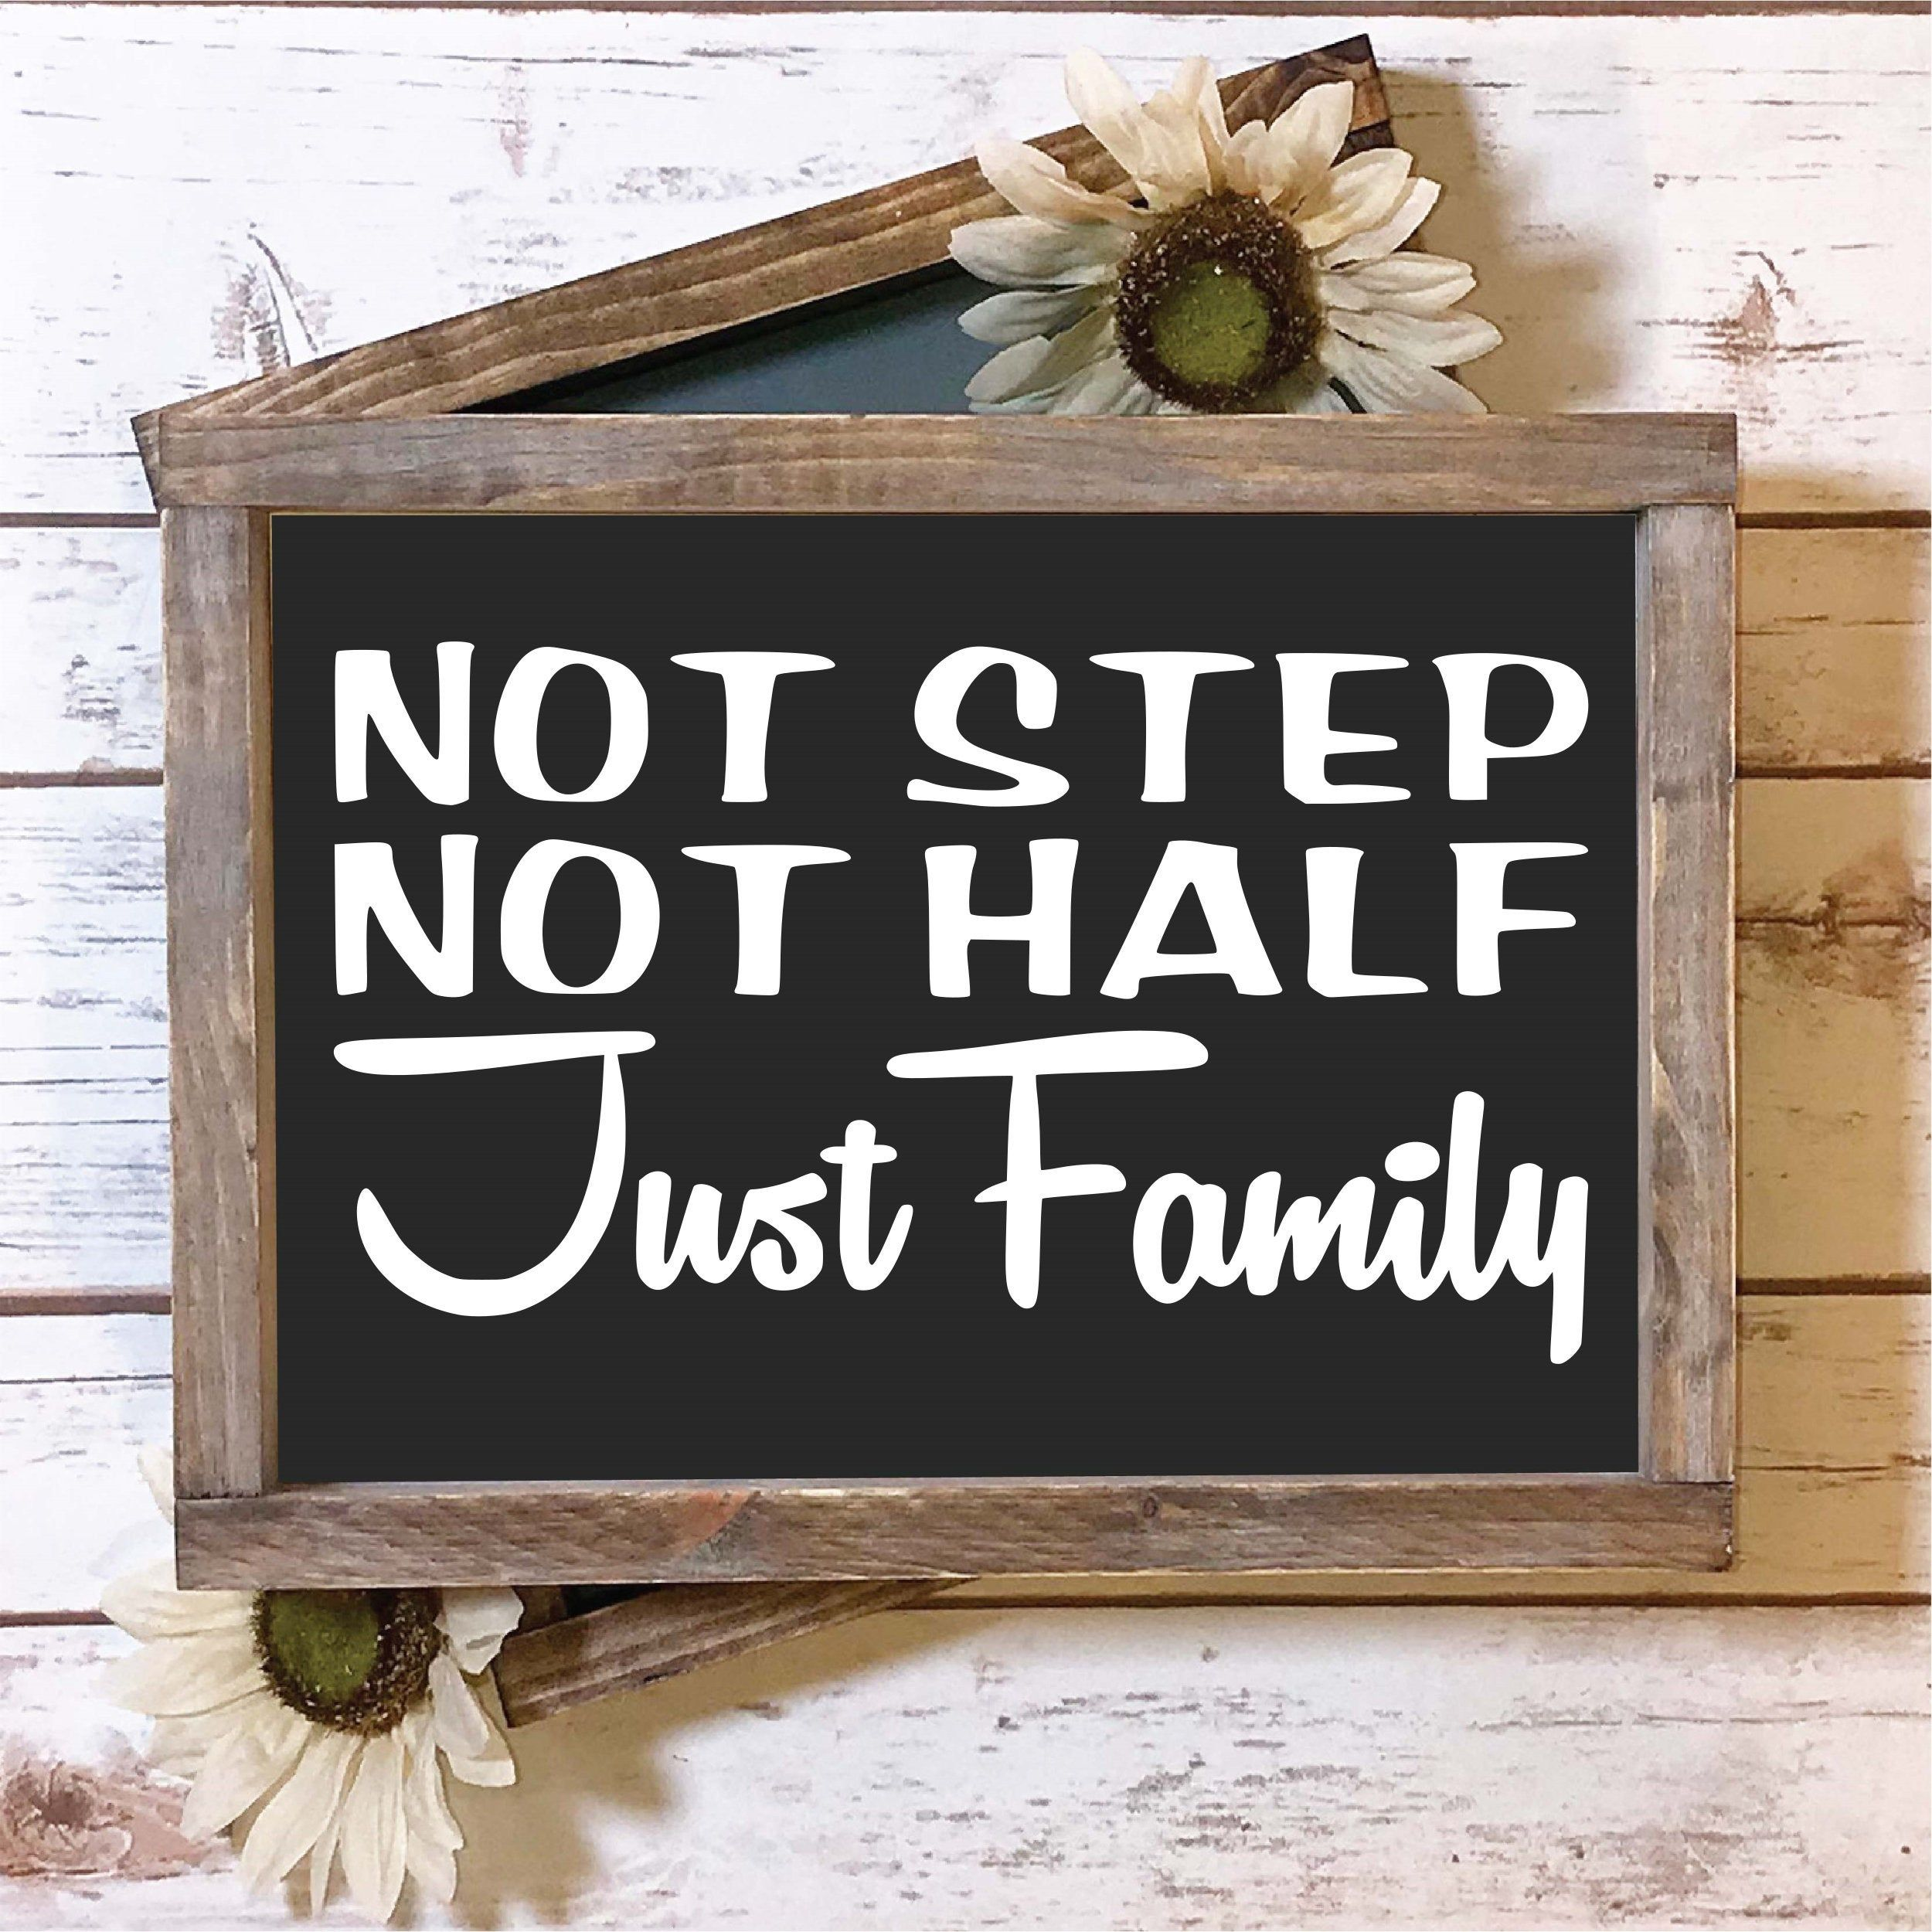 Family svg, Blended Family svg, Not Step Not Half Just